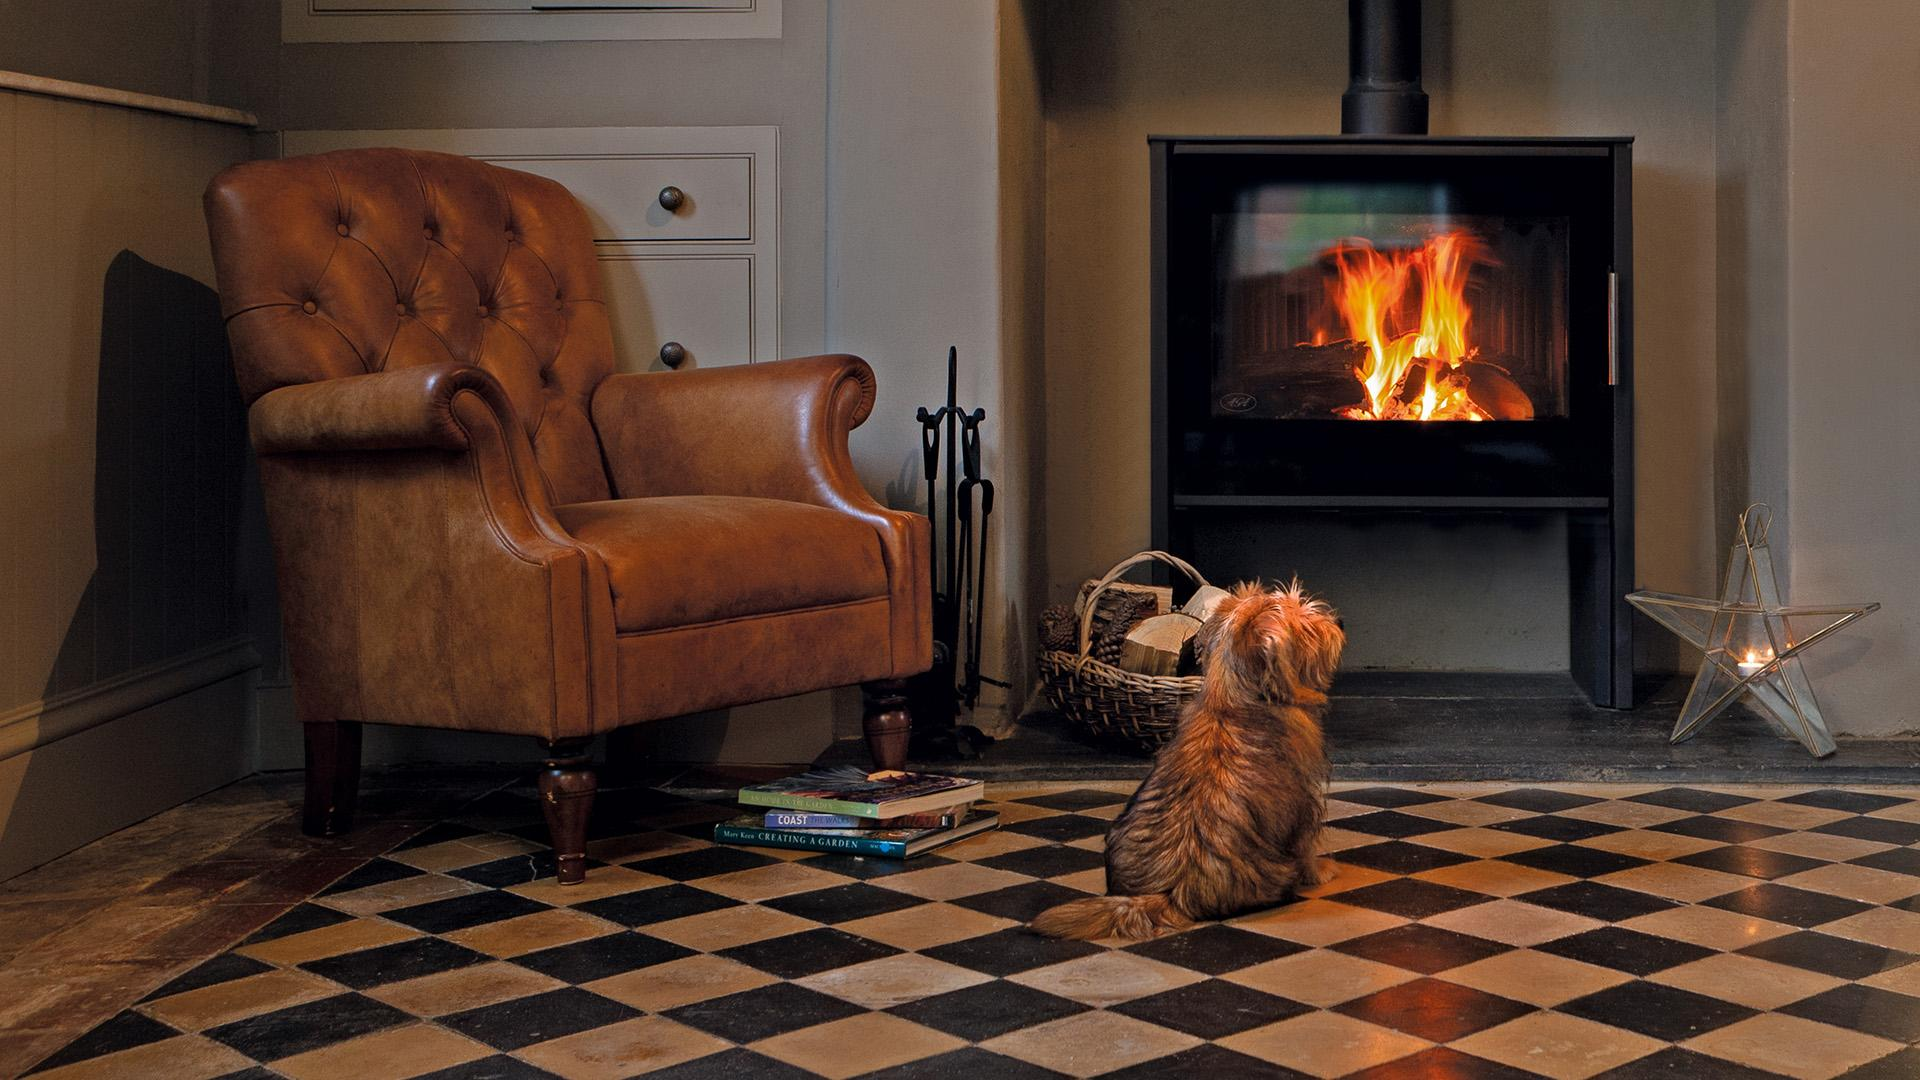 AGA Wood burning Stove with Norfolk Terrier